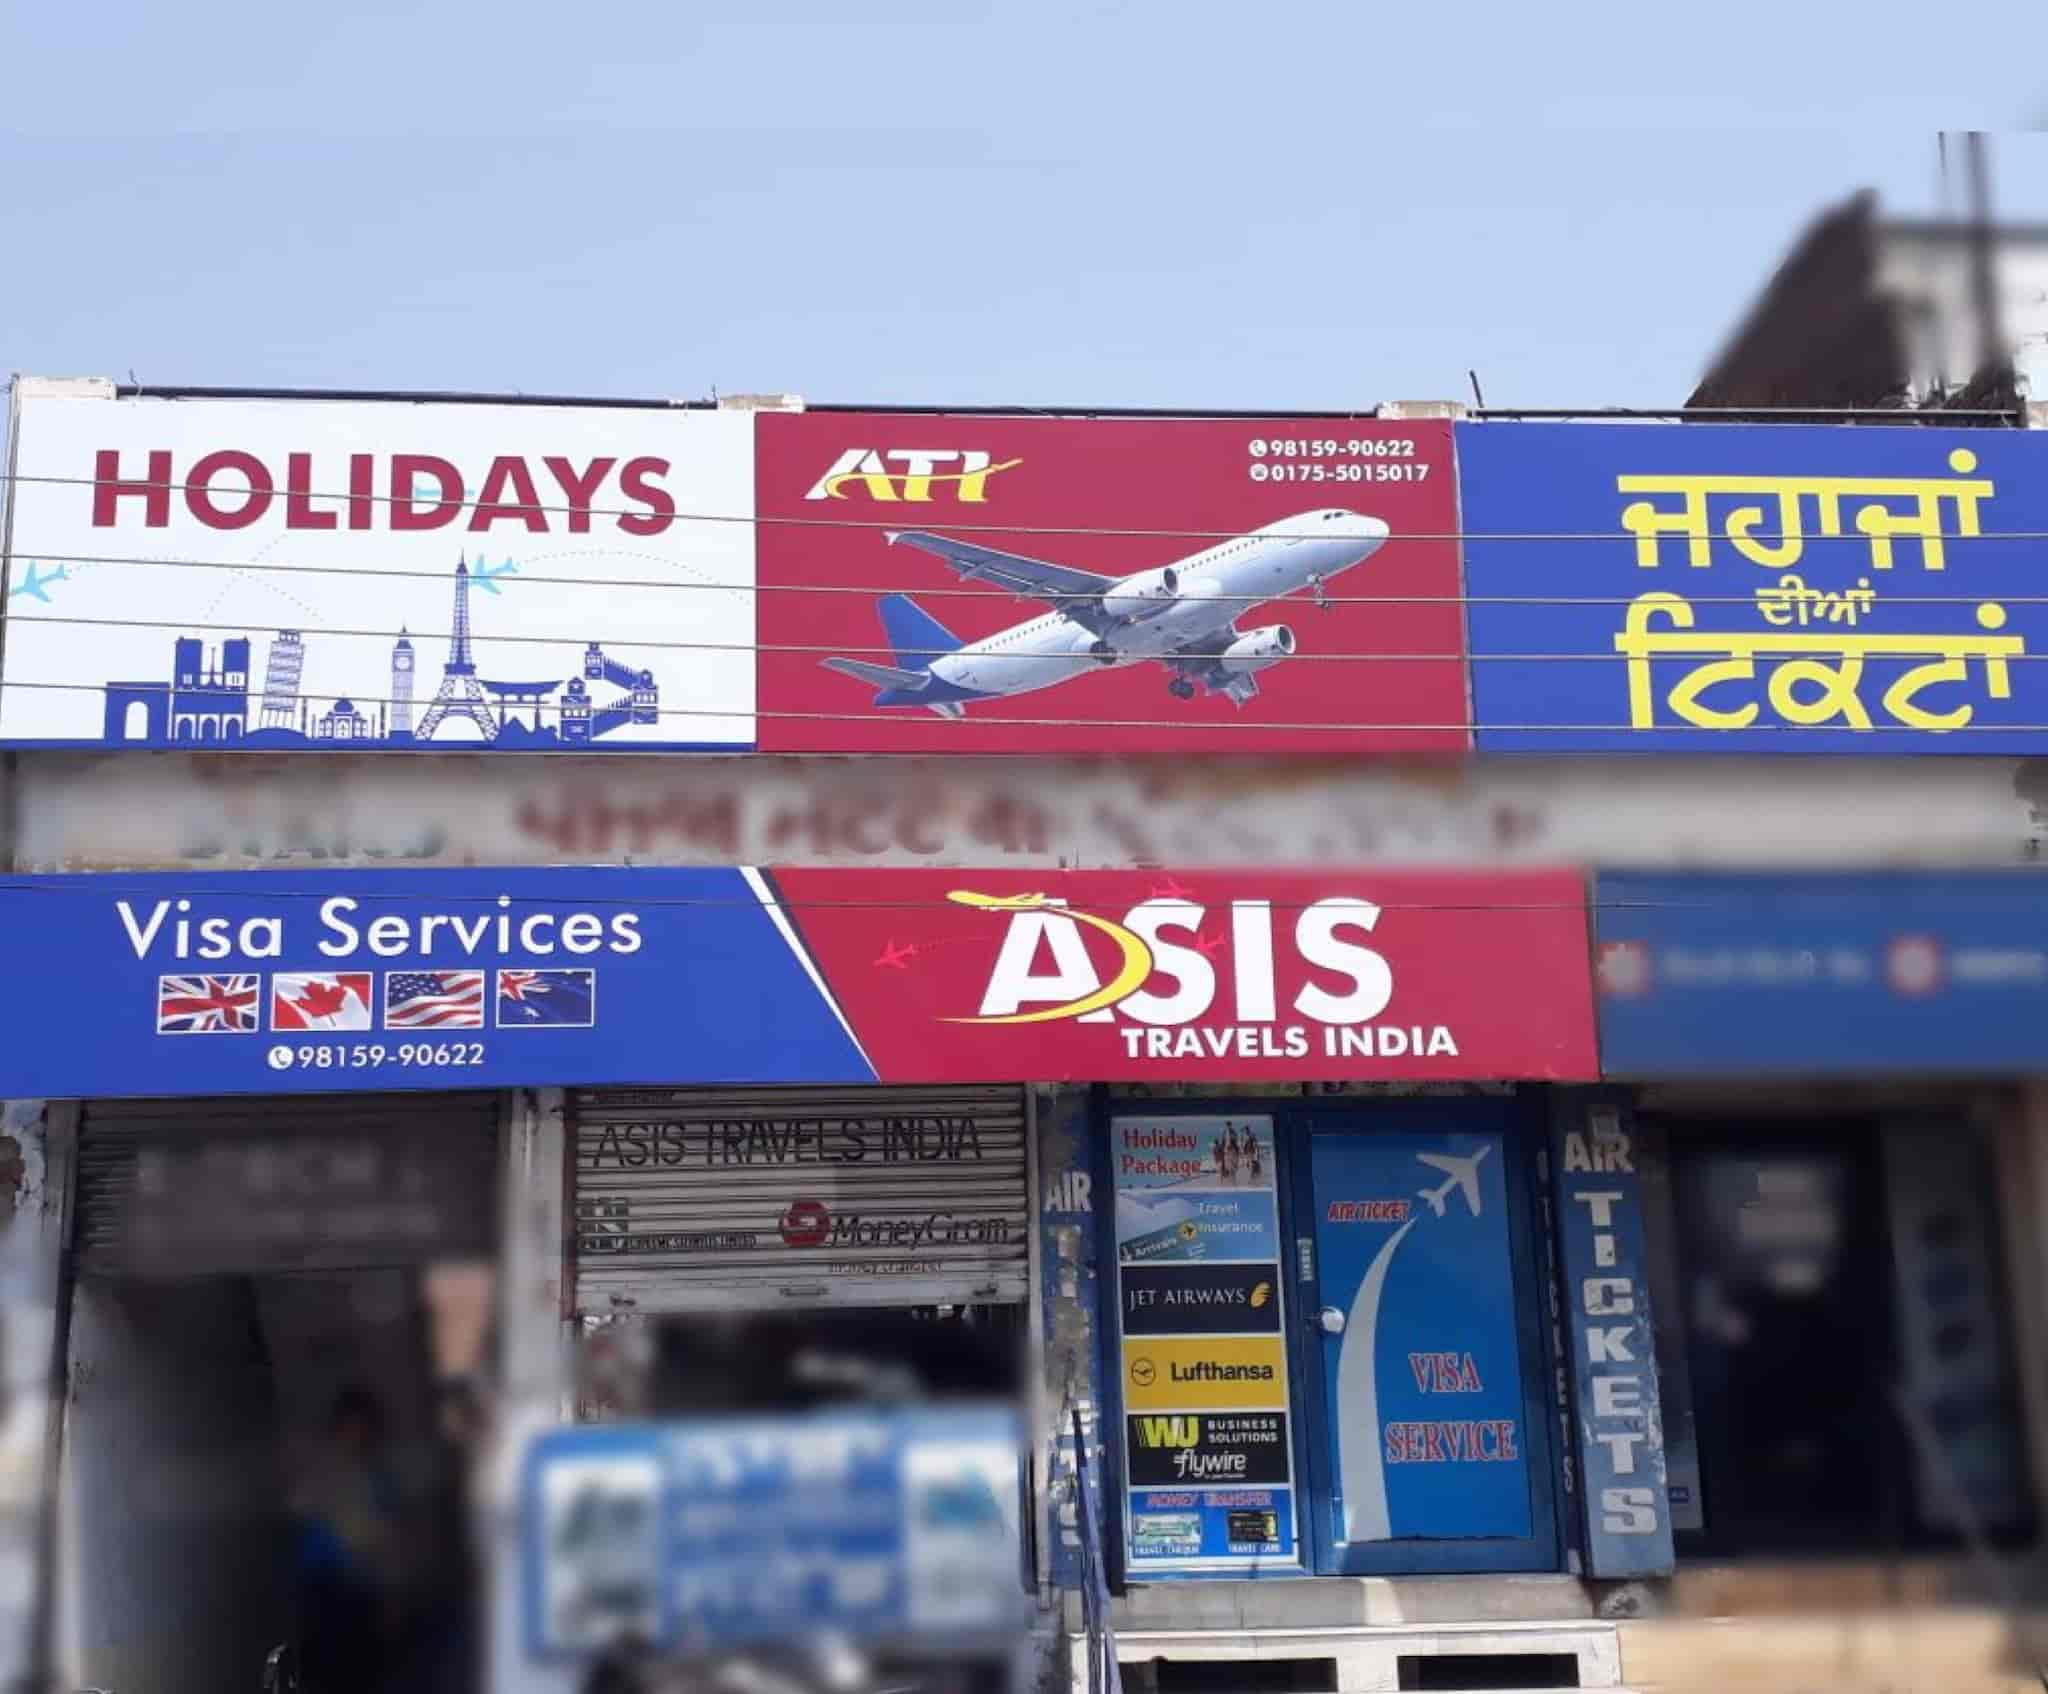 Asis Travels Travel Agents in Patiala Justdial